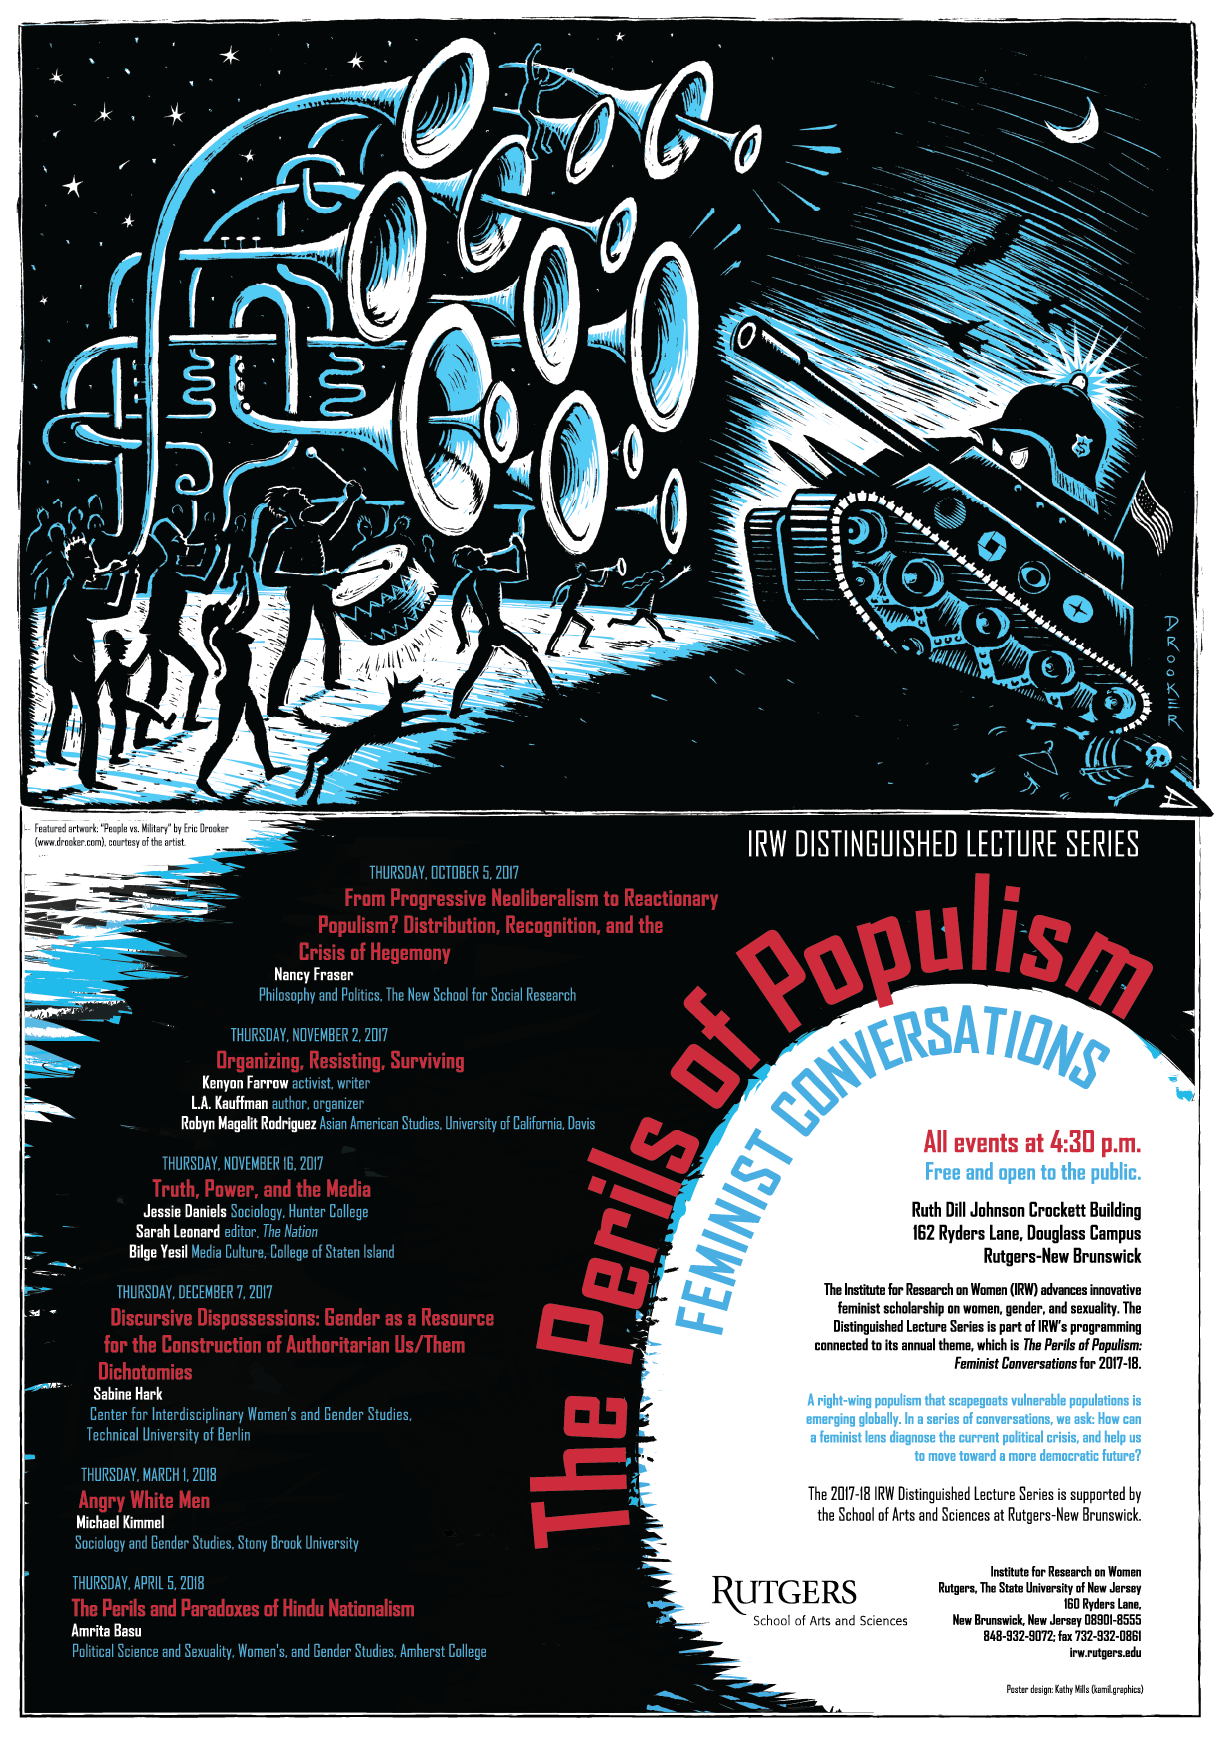 IRW 2017-18 Distinguished Lecture Series Poster -- The Perils of Populism: Feminist Conversations